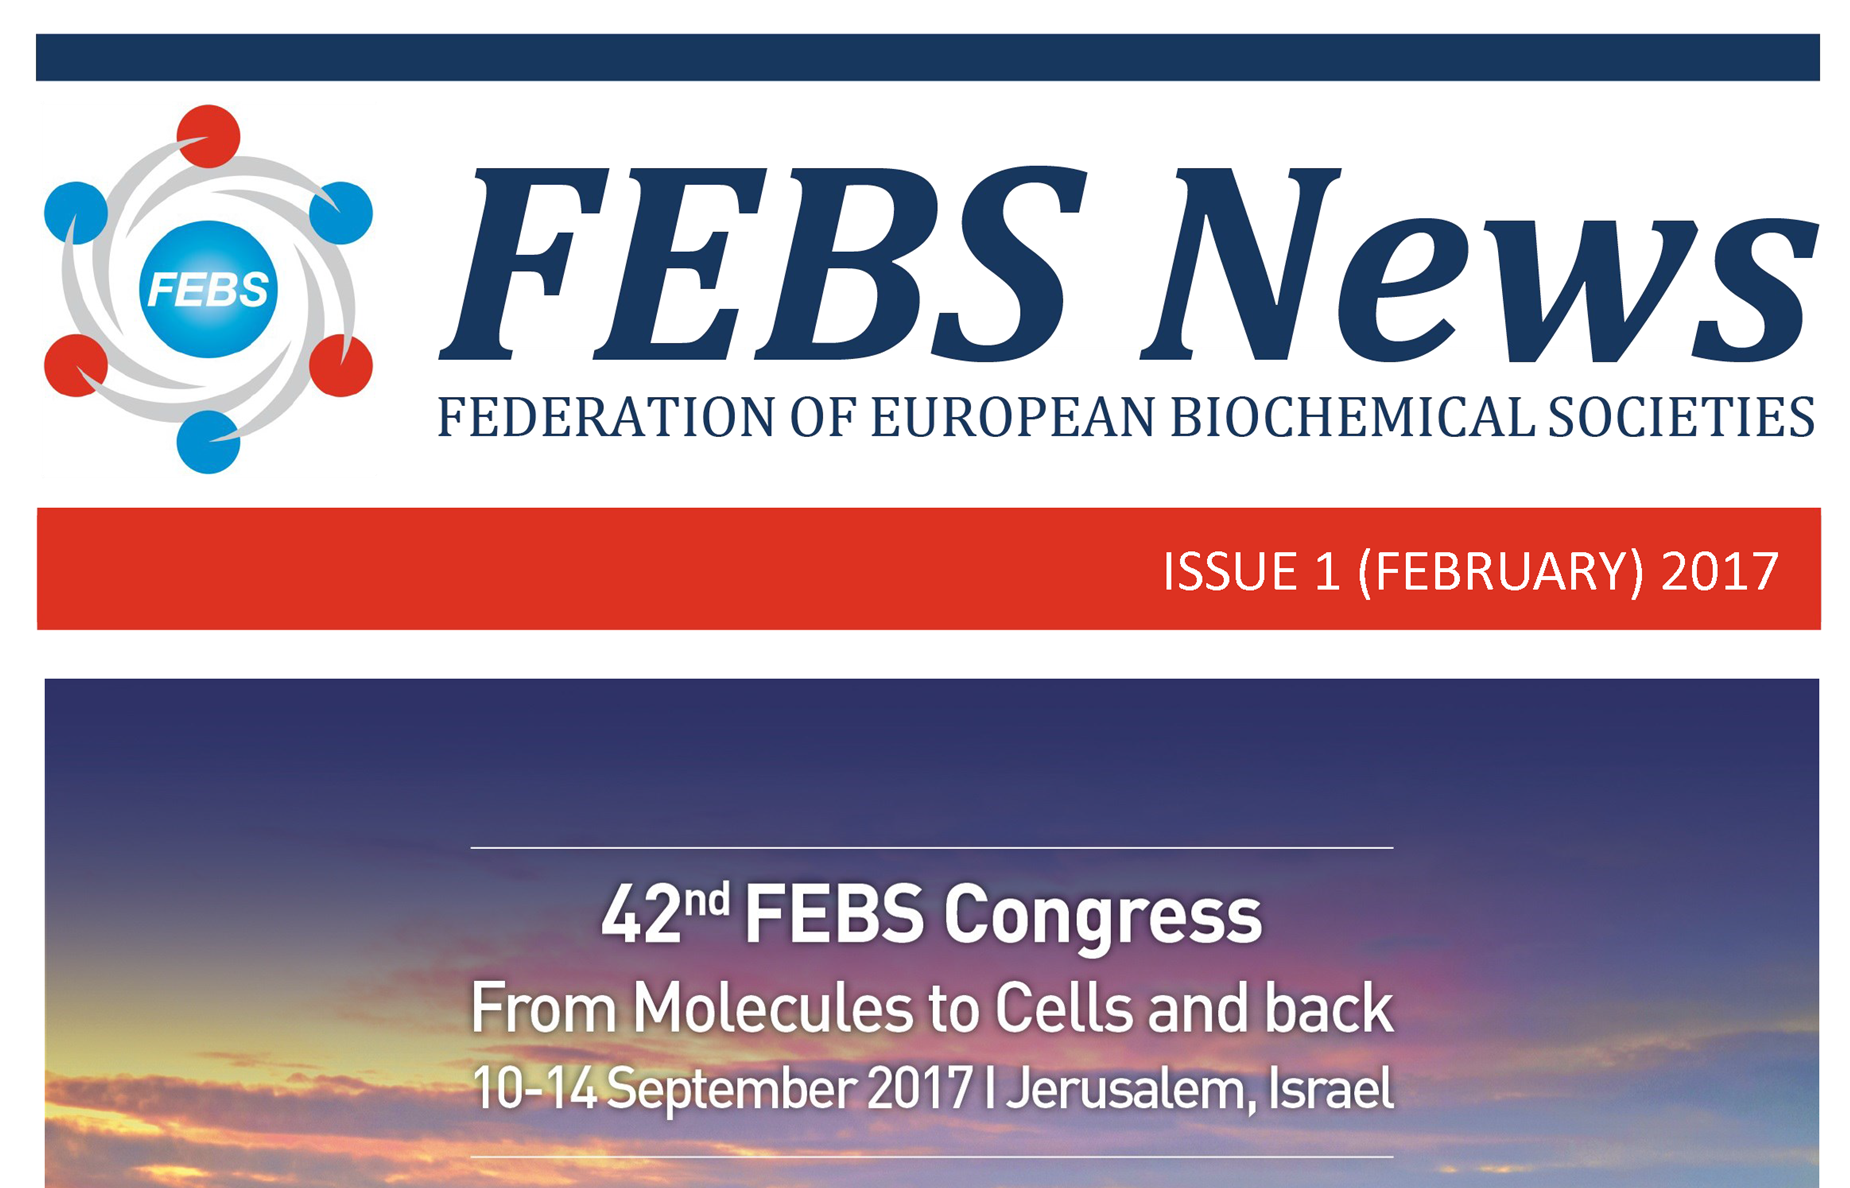 The February 2017 issue of FEBS News is out